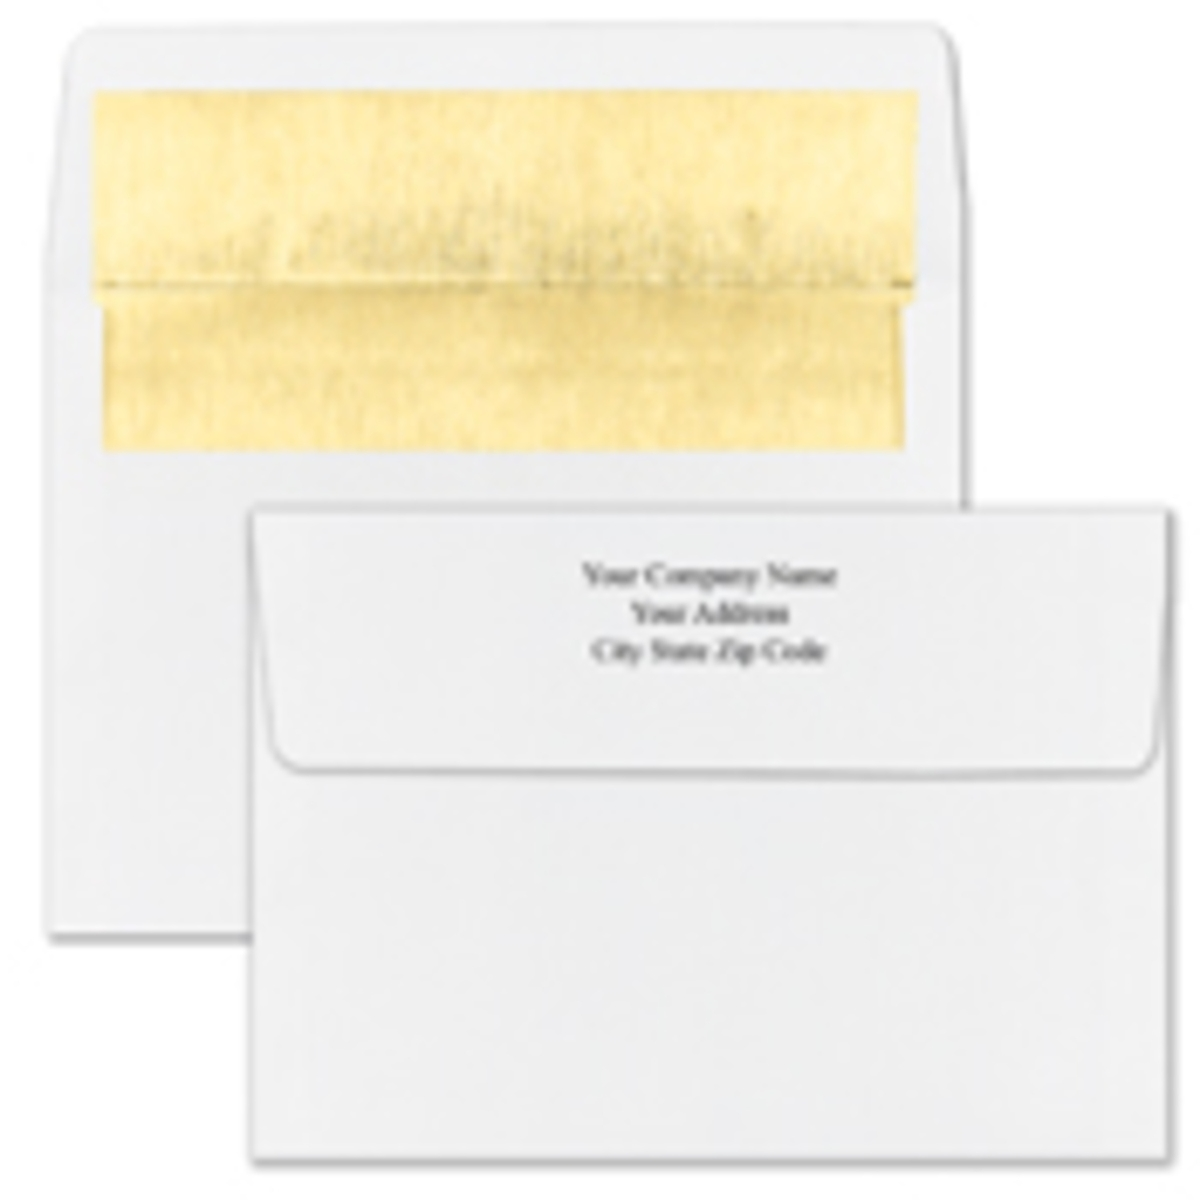 Recycled Shiny Gold Foil Lined White Envelope - Printed